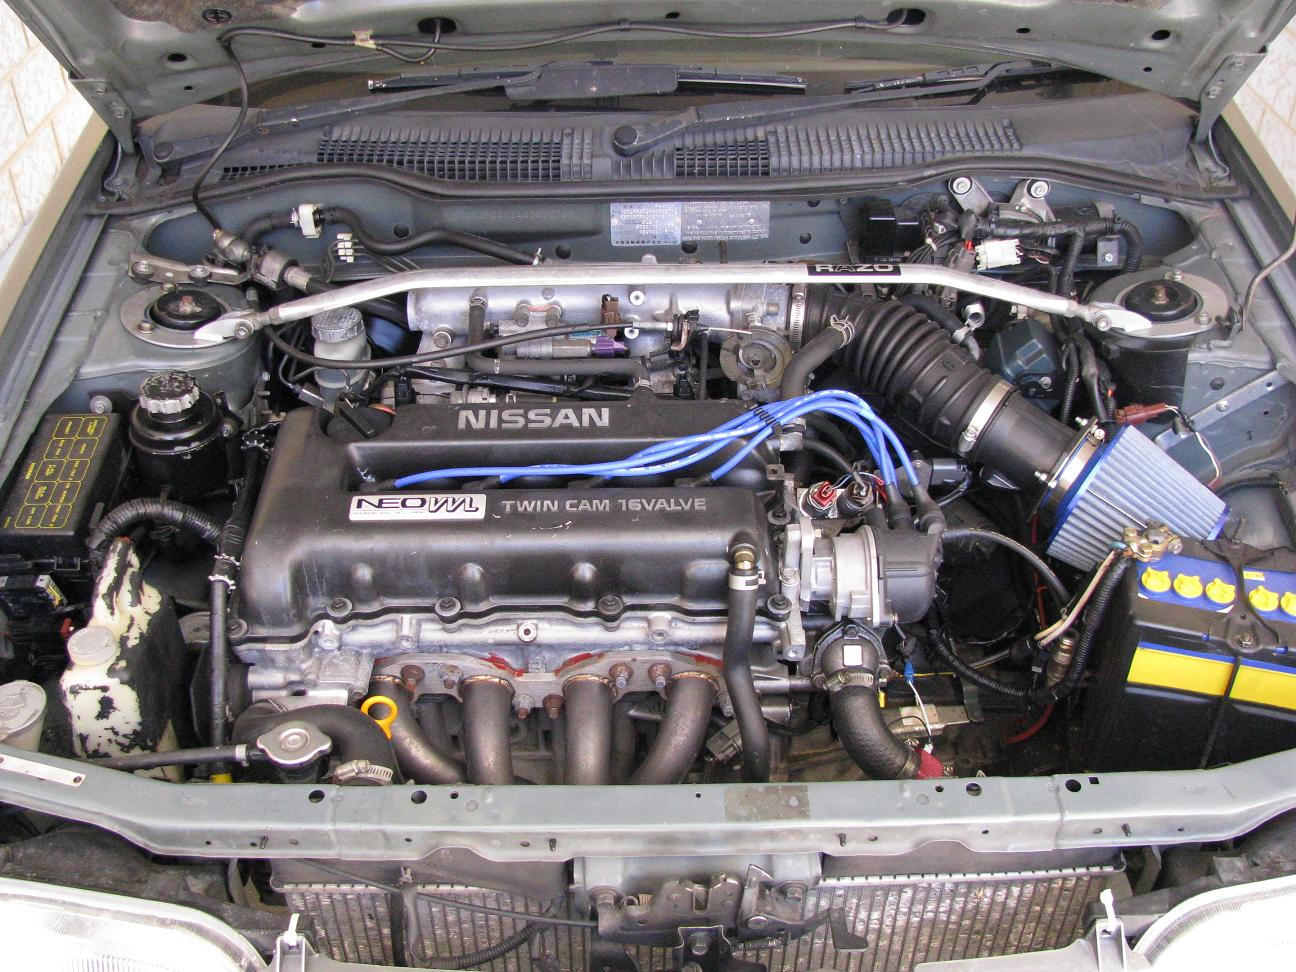 Canister Purge Valve Location On Chevy Trailblazer together with Isuzu Rodeo 3 2l Engine Diagram together with 04 Xterra Pcv Valve Location as well Nissan Xterra Cabin Air Filter Location likewise 05 Gmc Envoy Radio Wiring Diagram. on 2004 gmc envoy transmission diagram